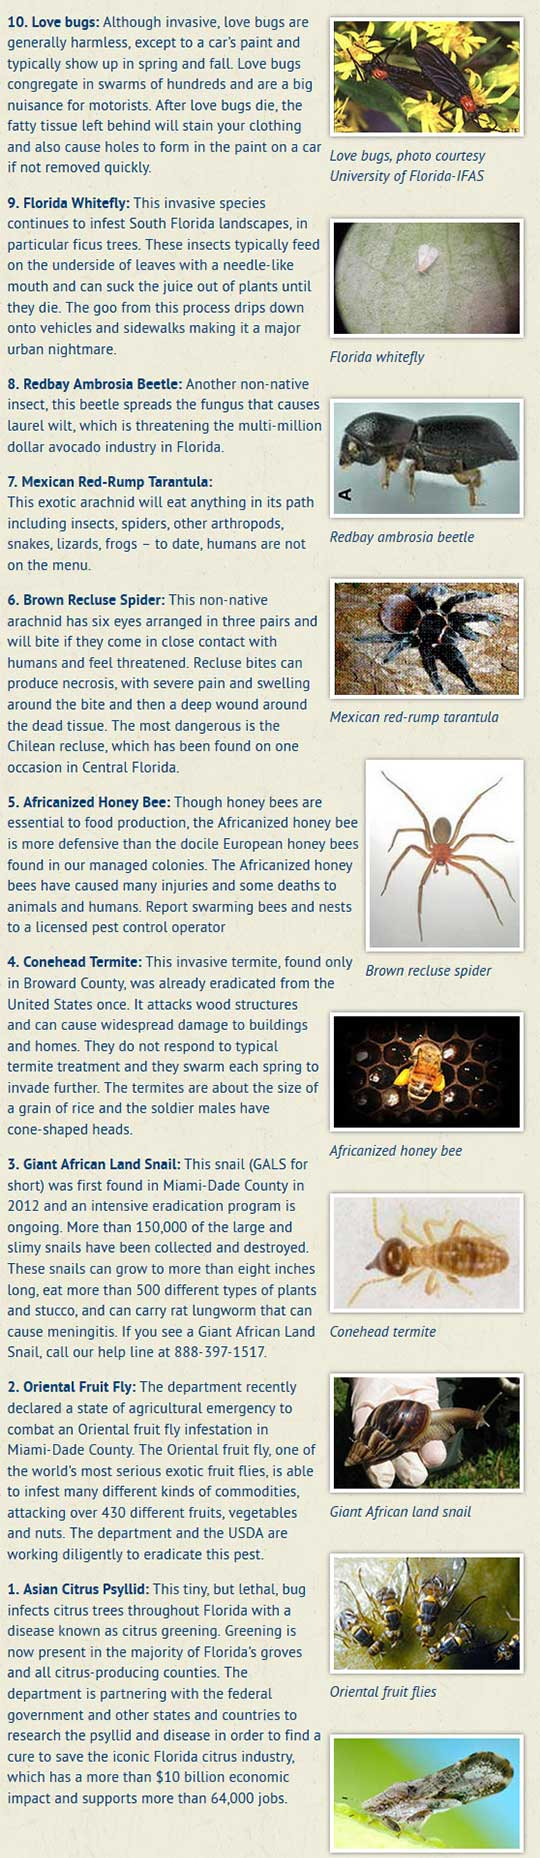 Look Out For Florida's Top 10 Creepy Crawlers : NorthEscambia com